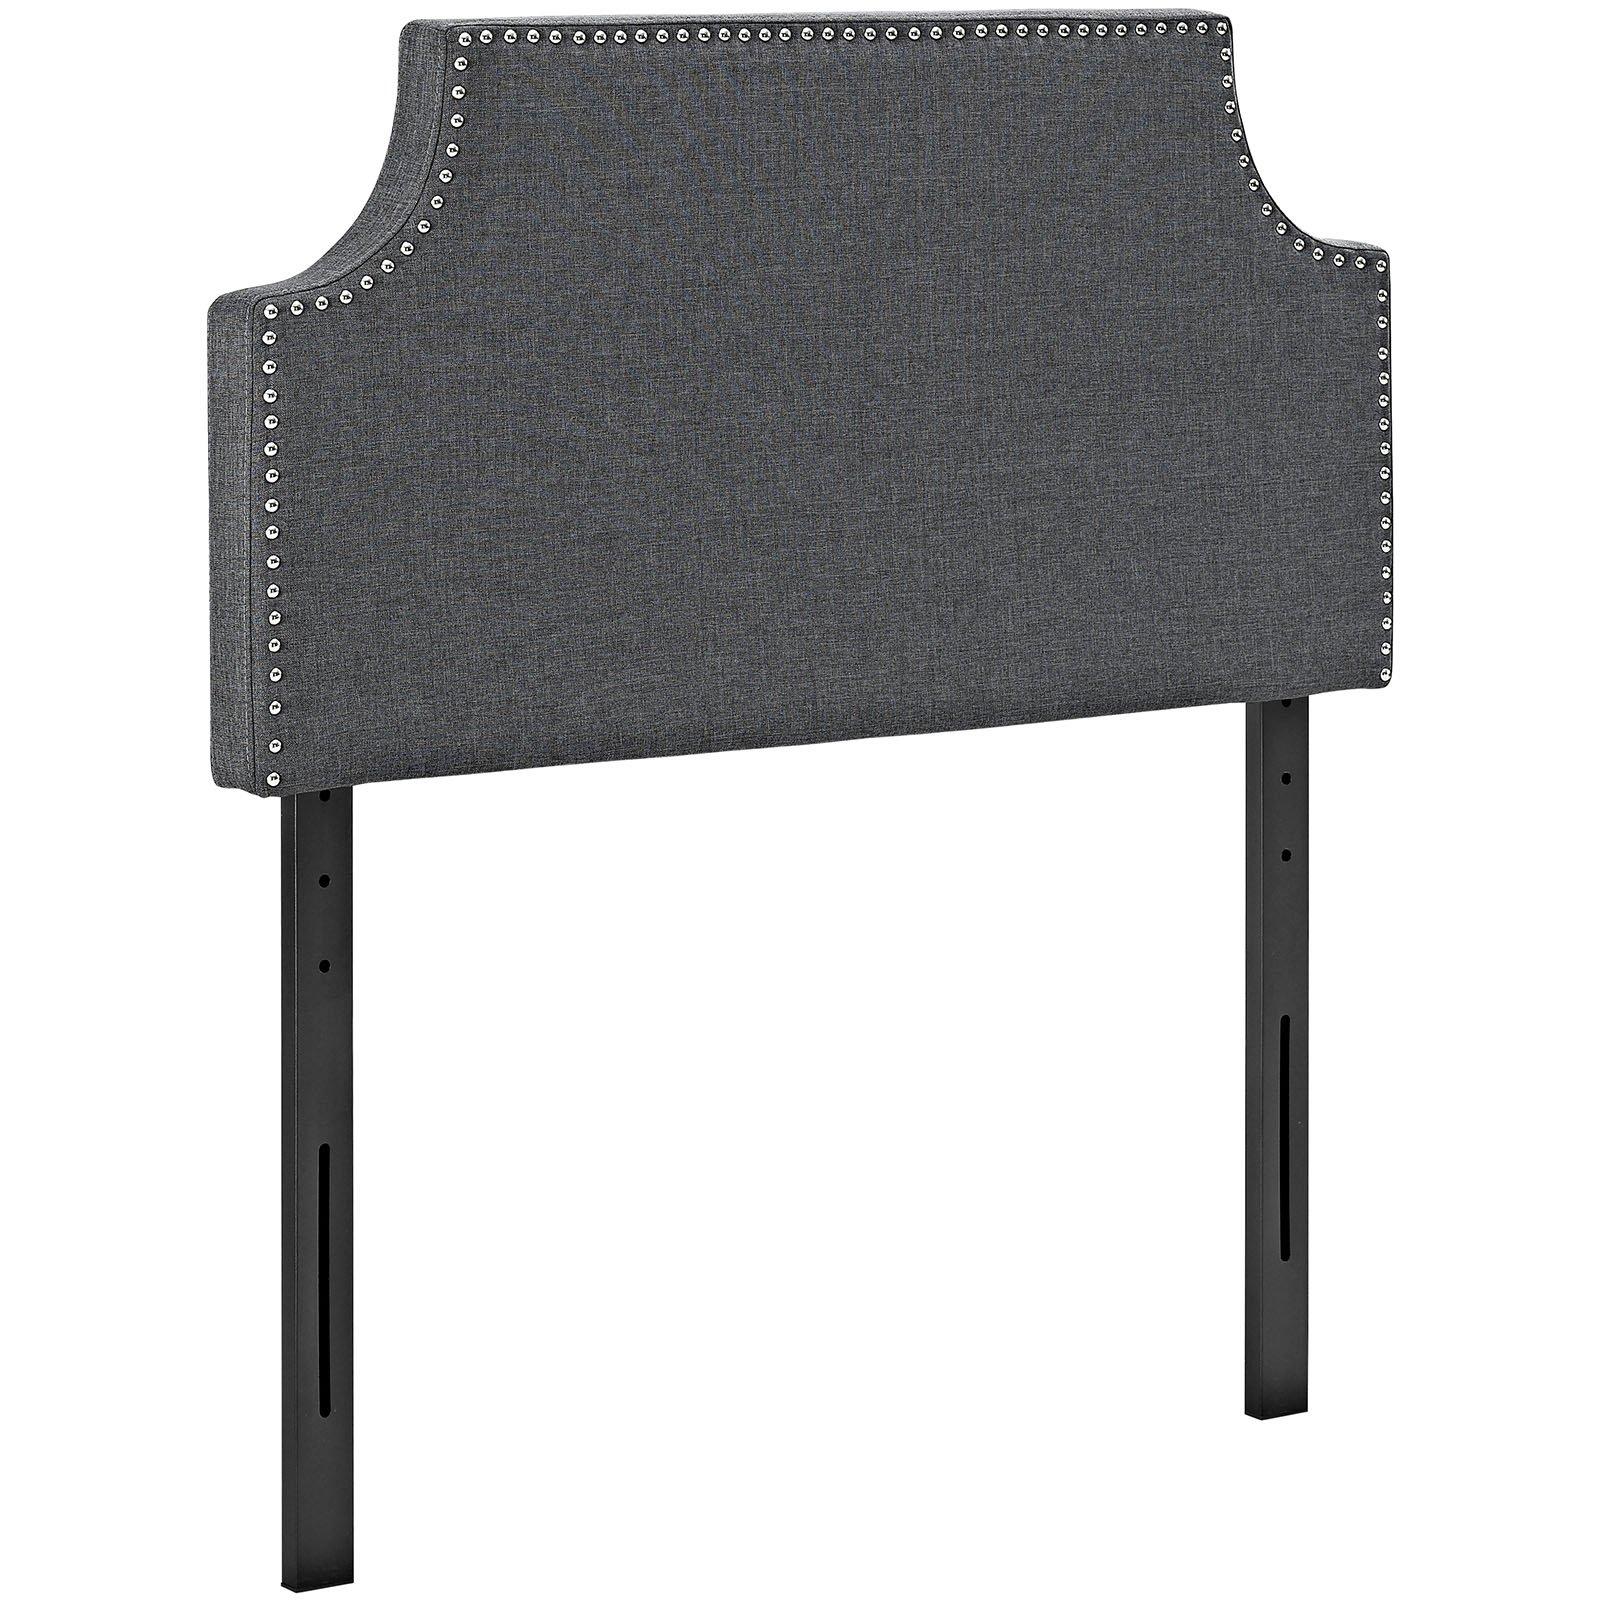 Modway Laura Linen Fabric Upholstered Twin Size Headboard with Cut-Out Edges and Nailhead Trim in Gray